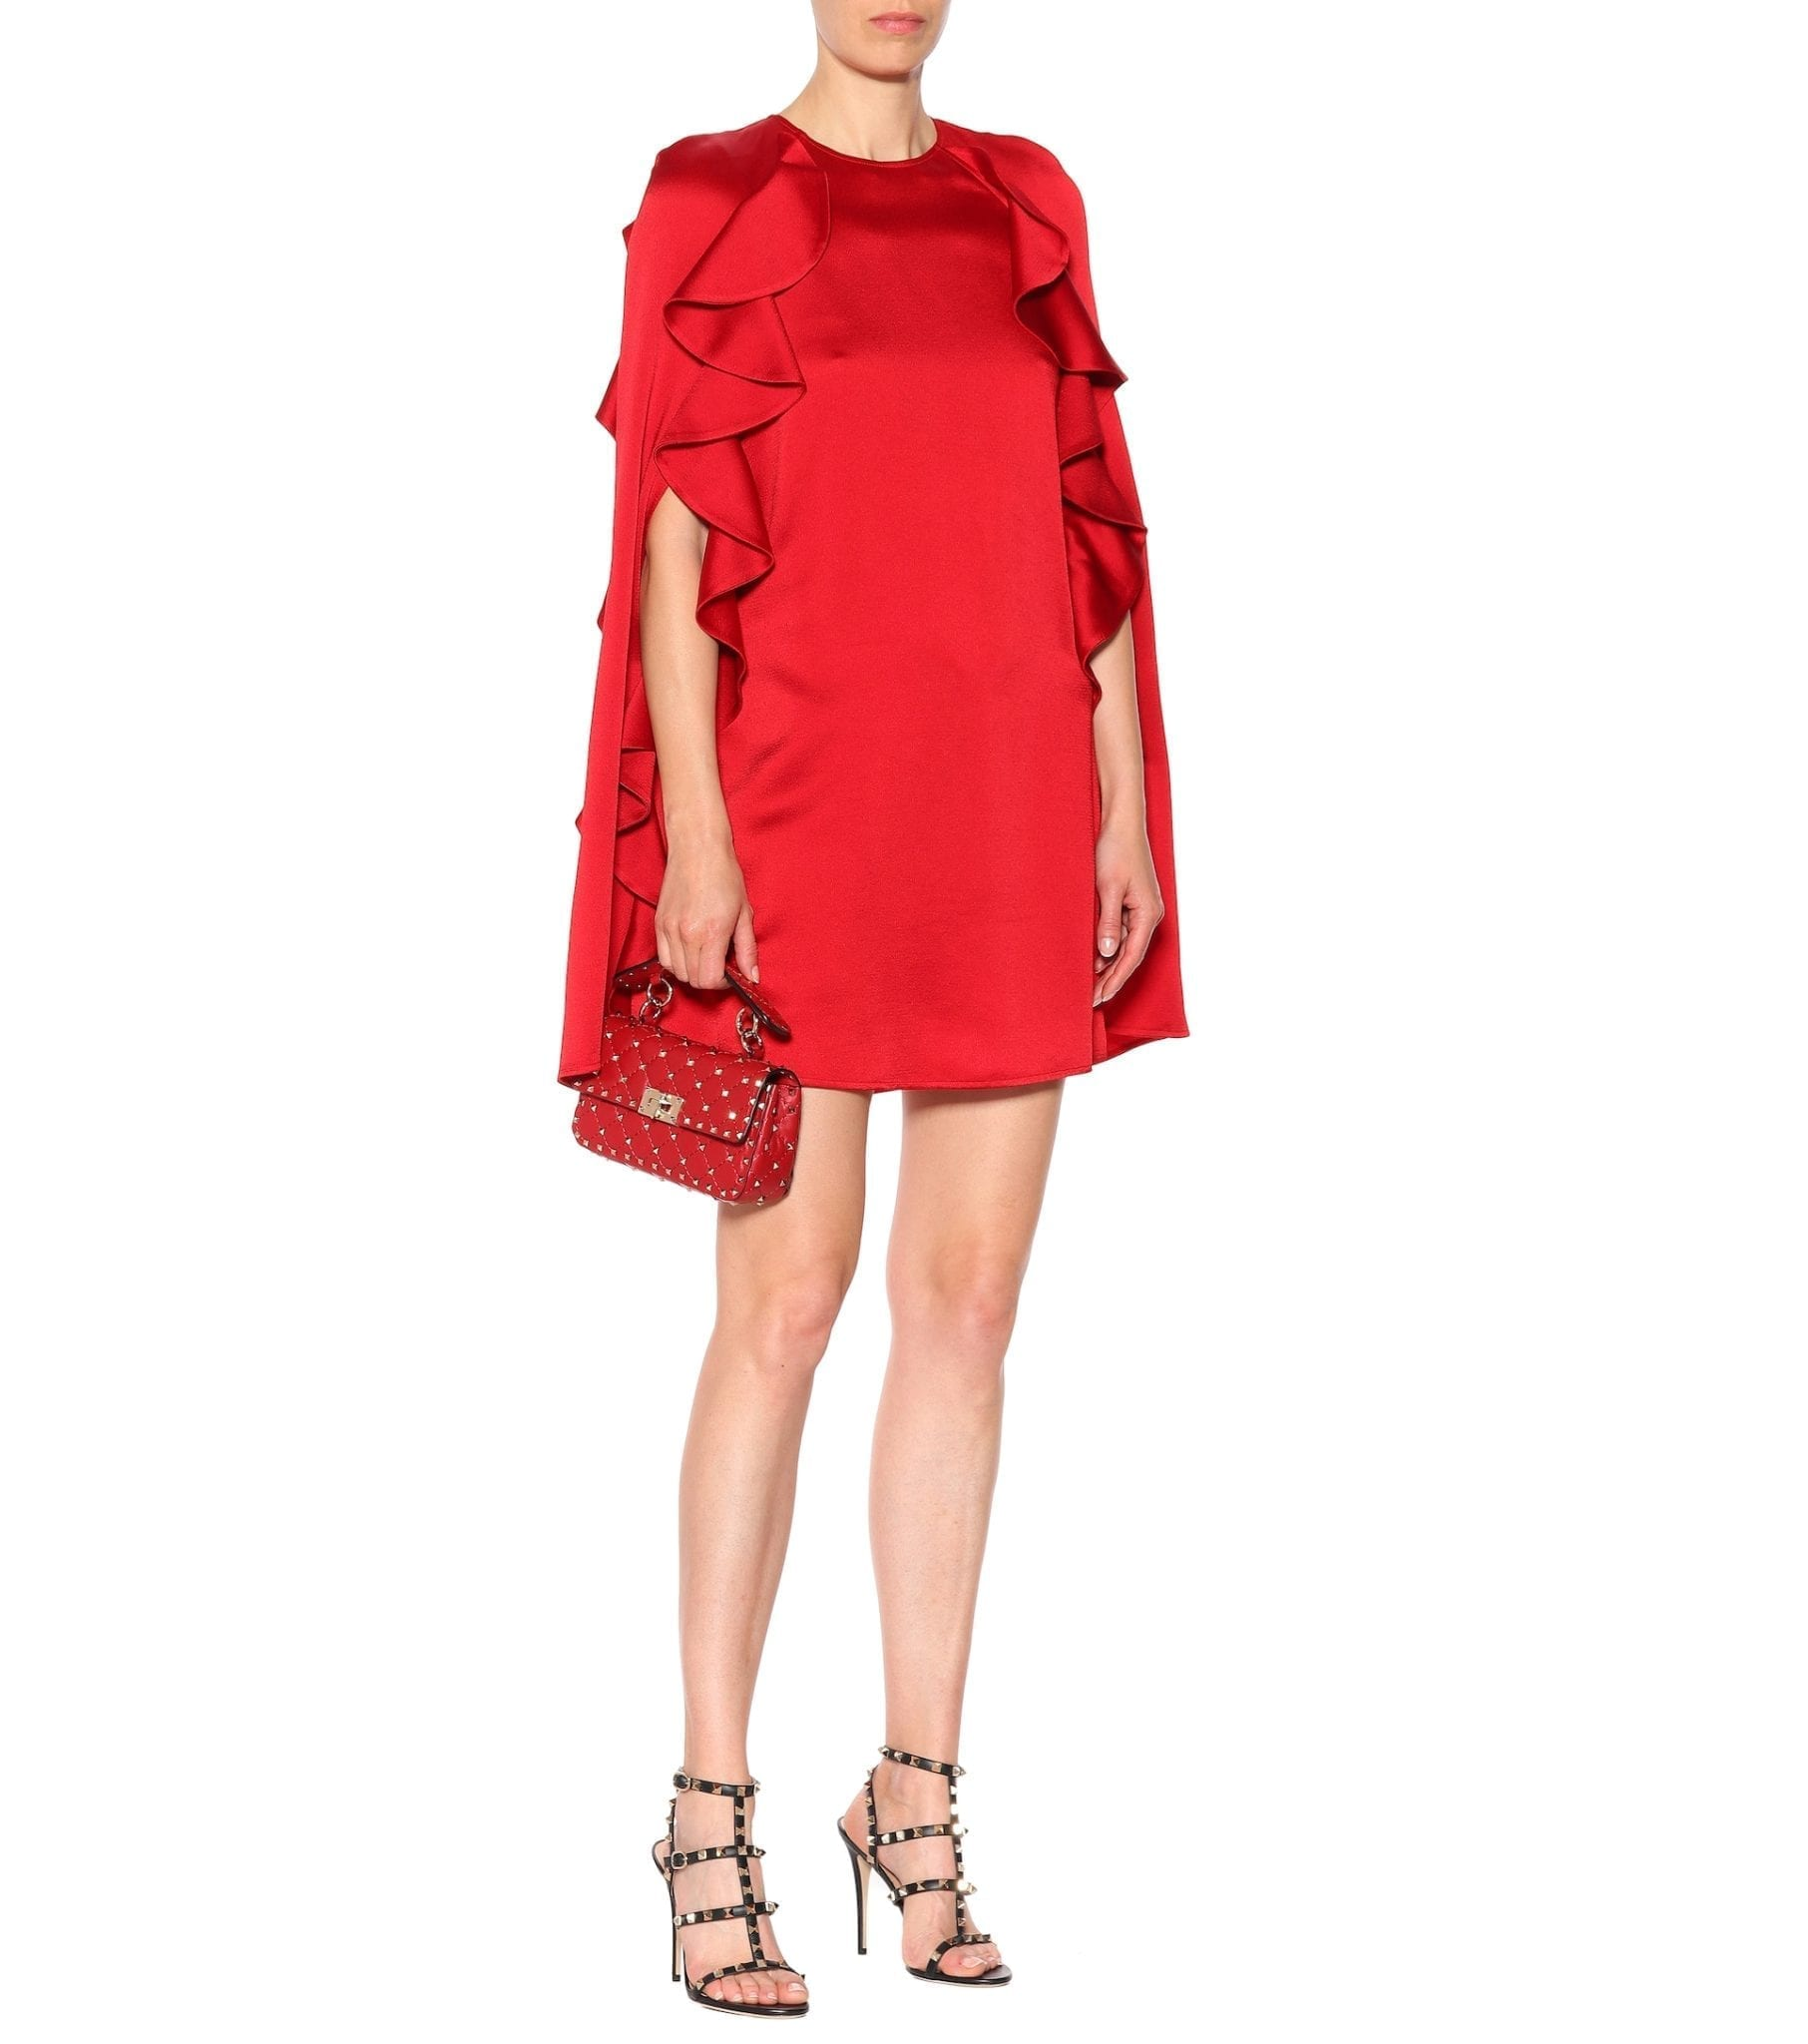 VALENTINO Crêpe Cape Red Dress